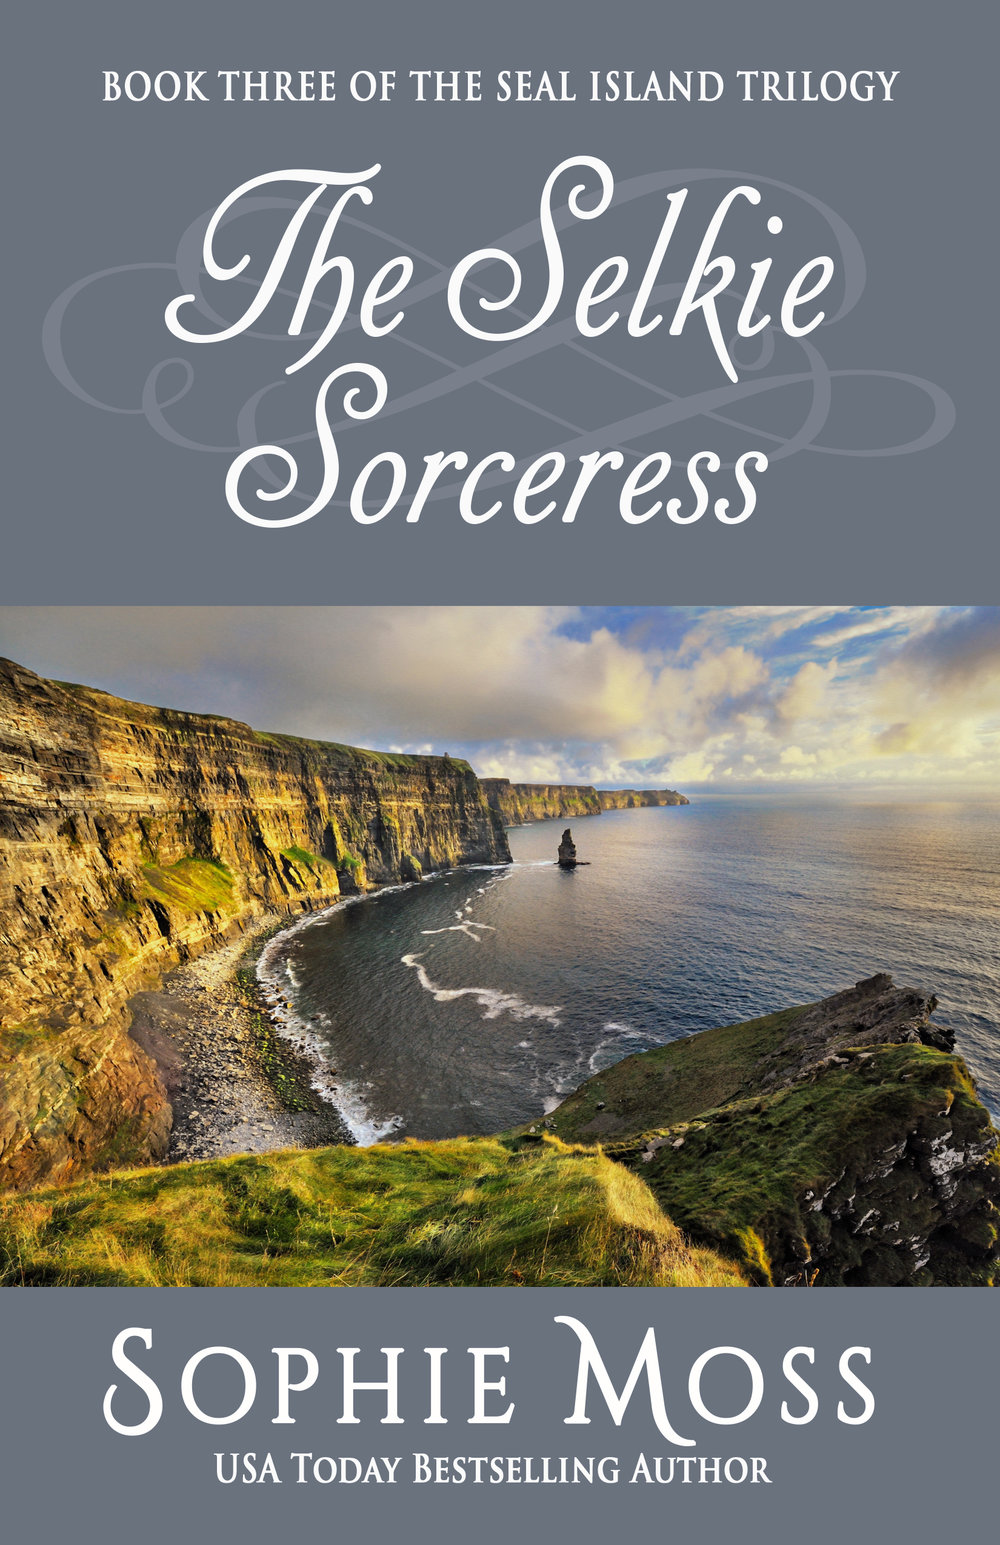 The Selkie Sorceress ebook cover Aug 14 2017 VELLUM.jpg